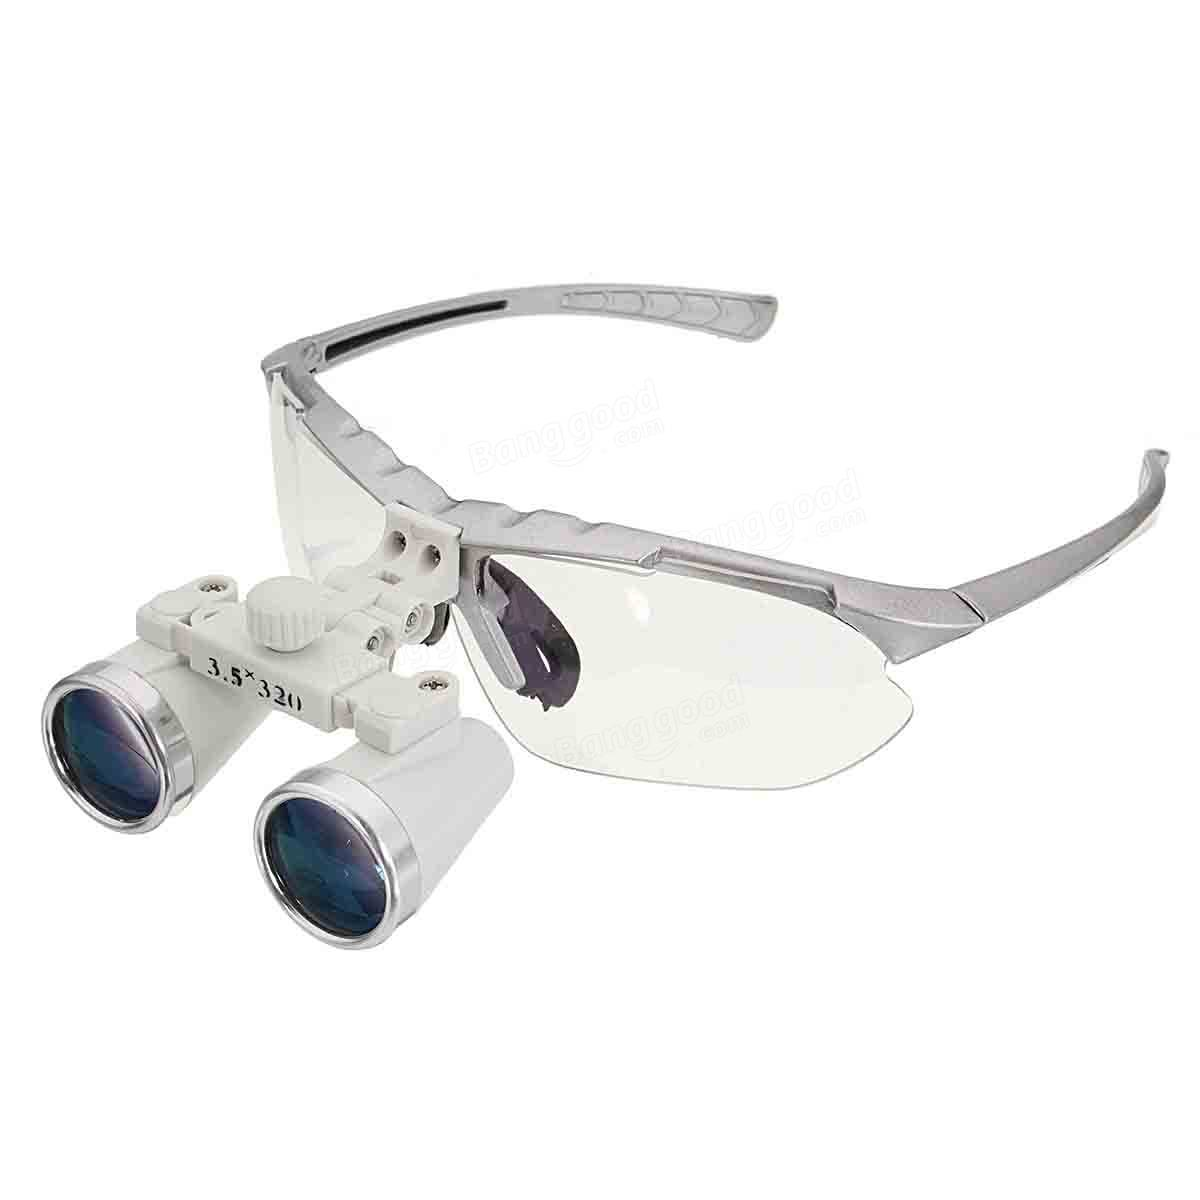 3 5x 320mm Dental Surgical Binocular Loupes Optical Glass